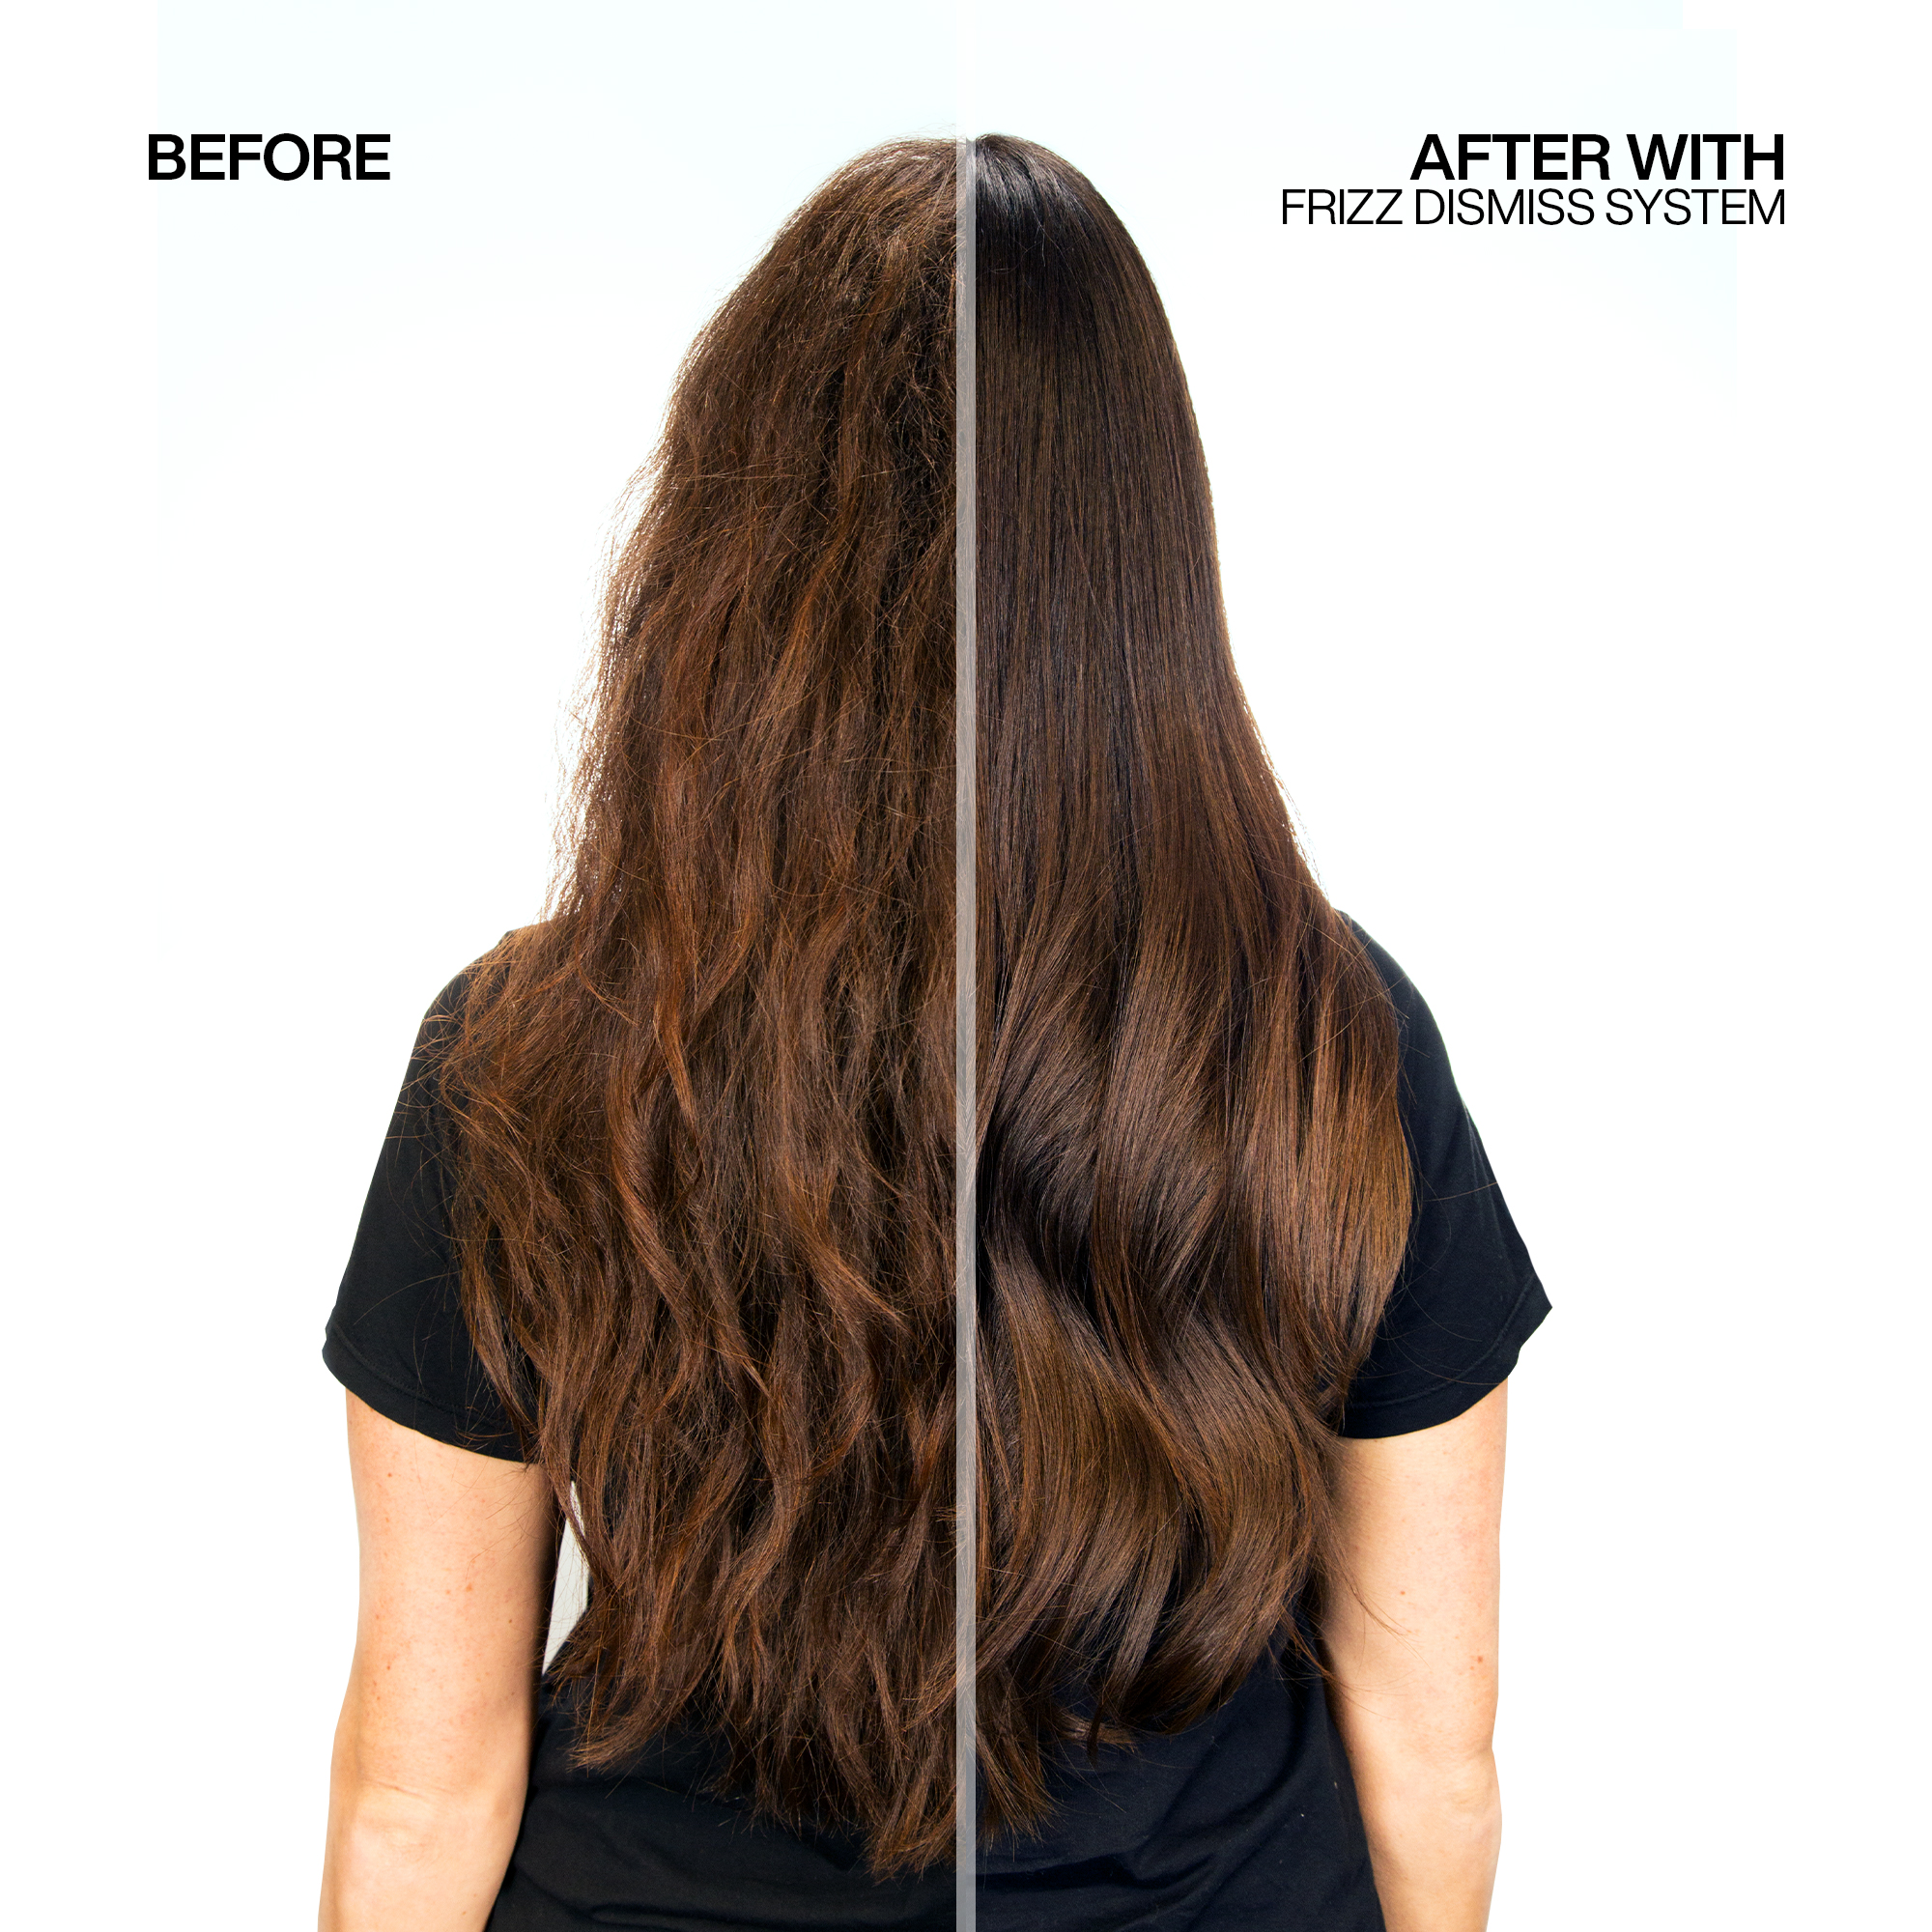 FRIZZ DISMISS before after 1